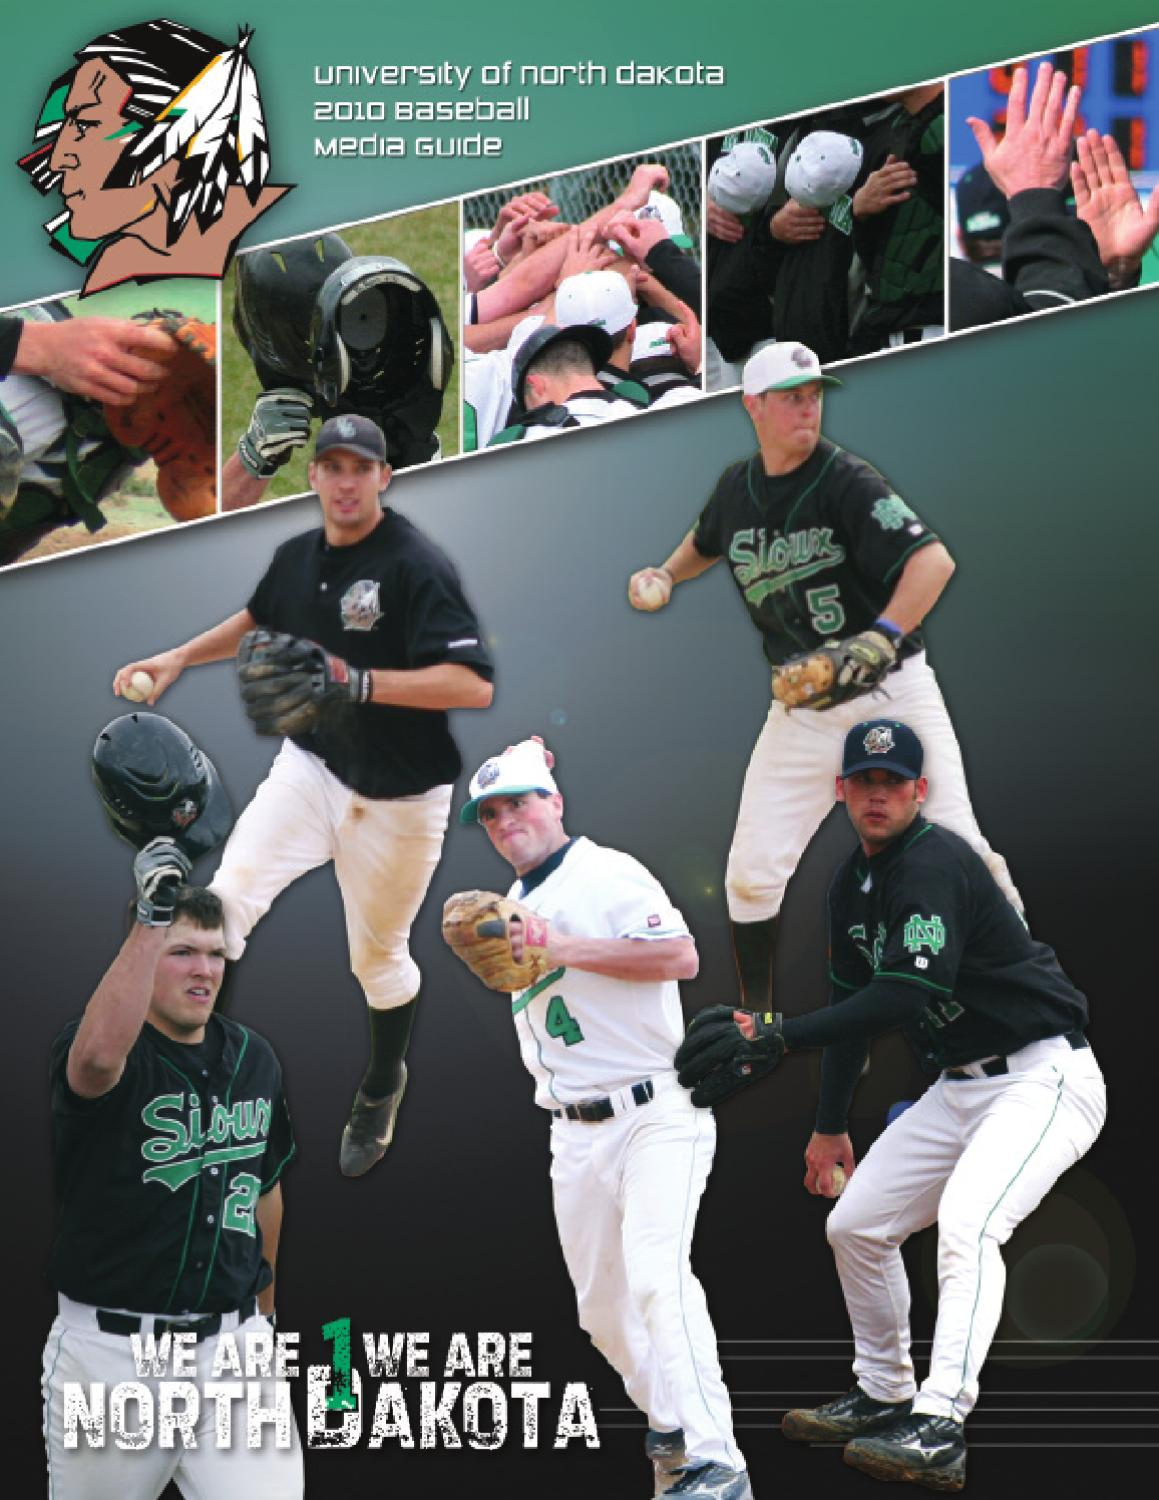 University of North Dakota baseball media guide 2010 by